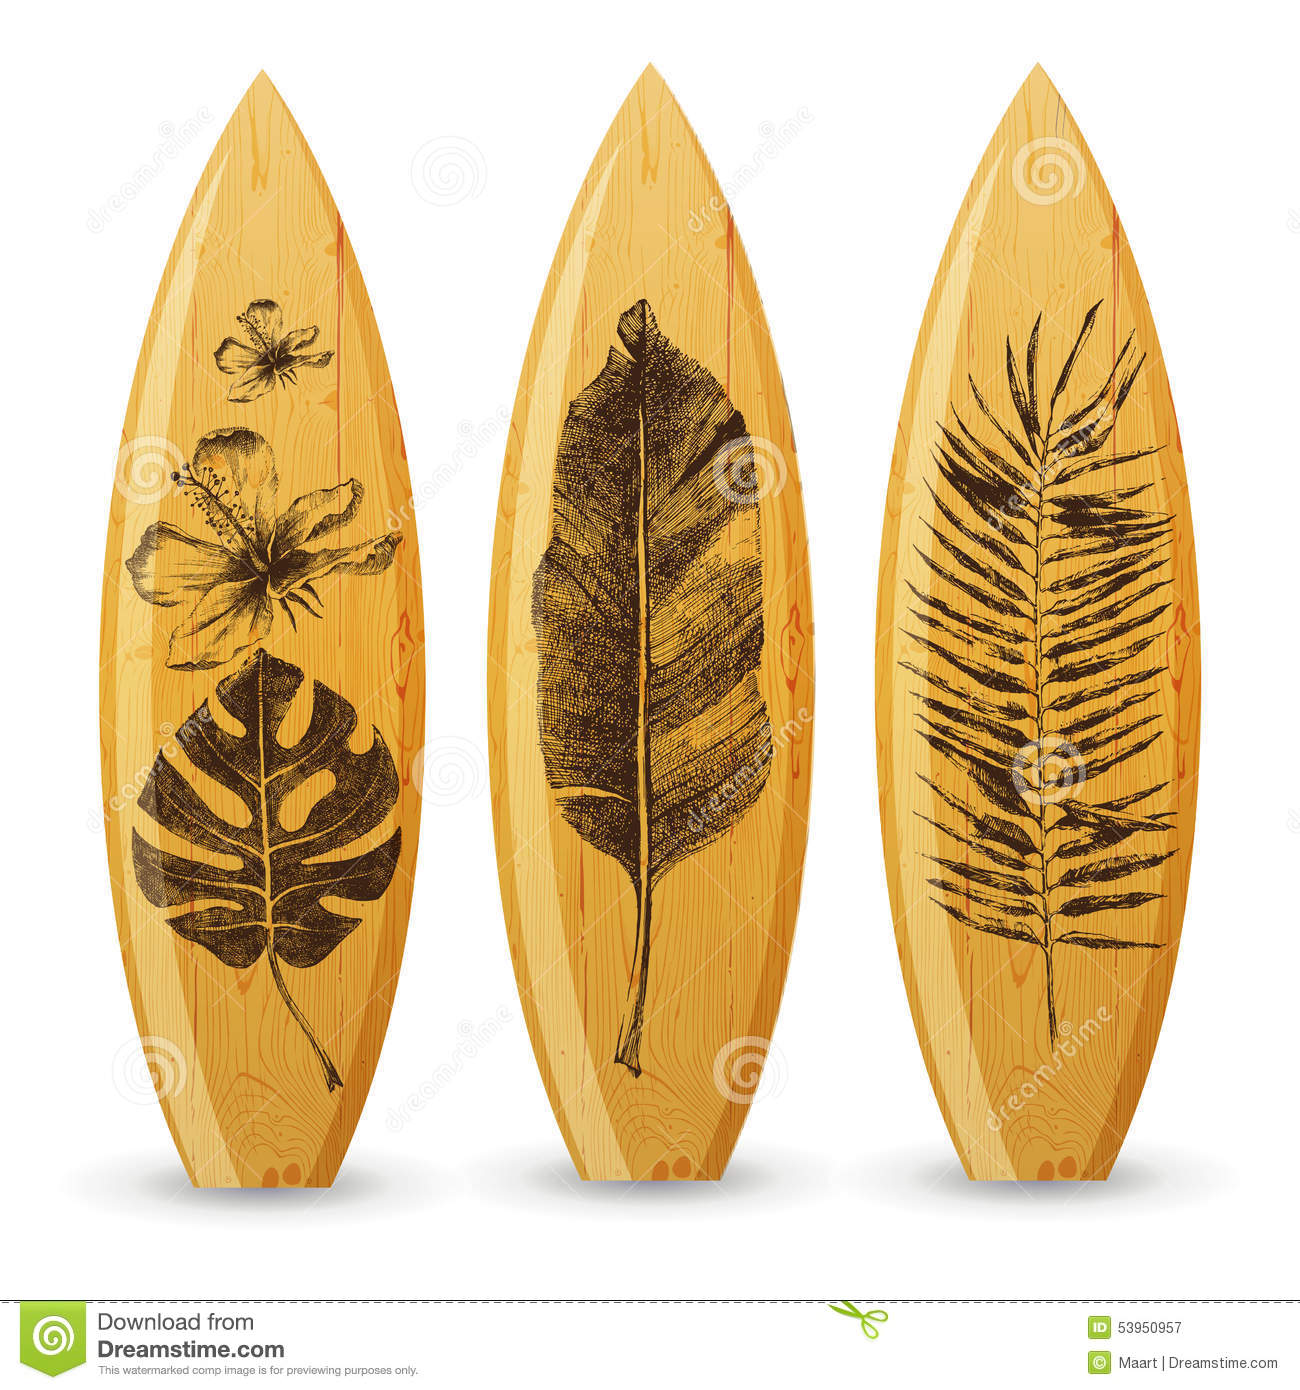 planches de surf en bois avec les feuilles tropicales tir es par la main illustration de vecteur. Black Bedroom Furniture Sets. Home Design Ideas